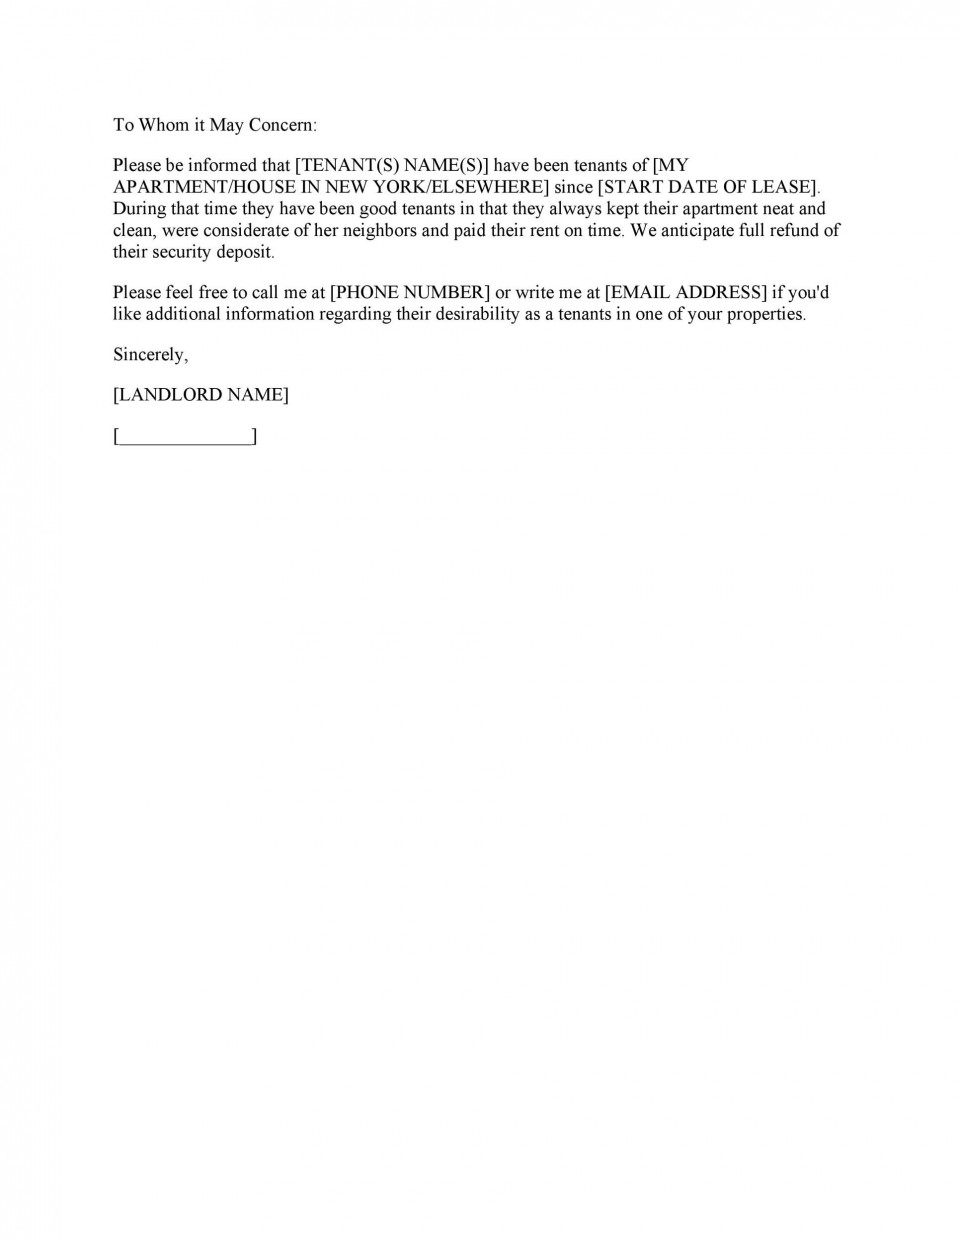 004 Breathtaking Free Reference Letter Template For Landlord High Definition  Rental960